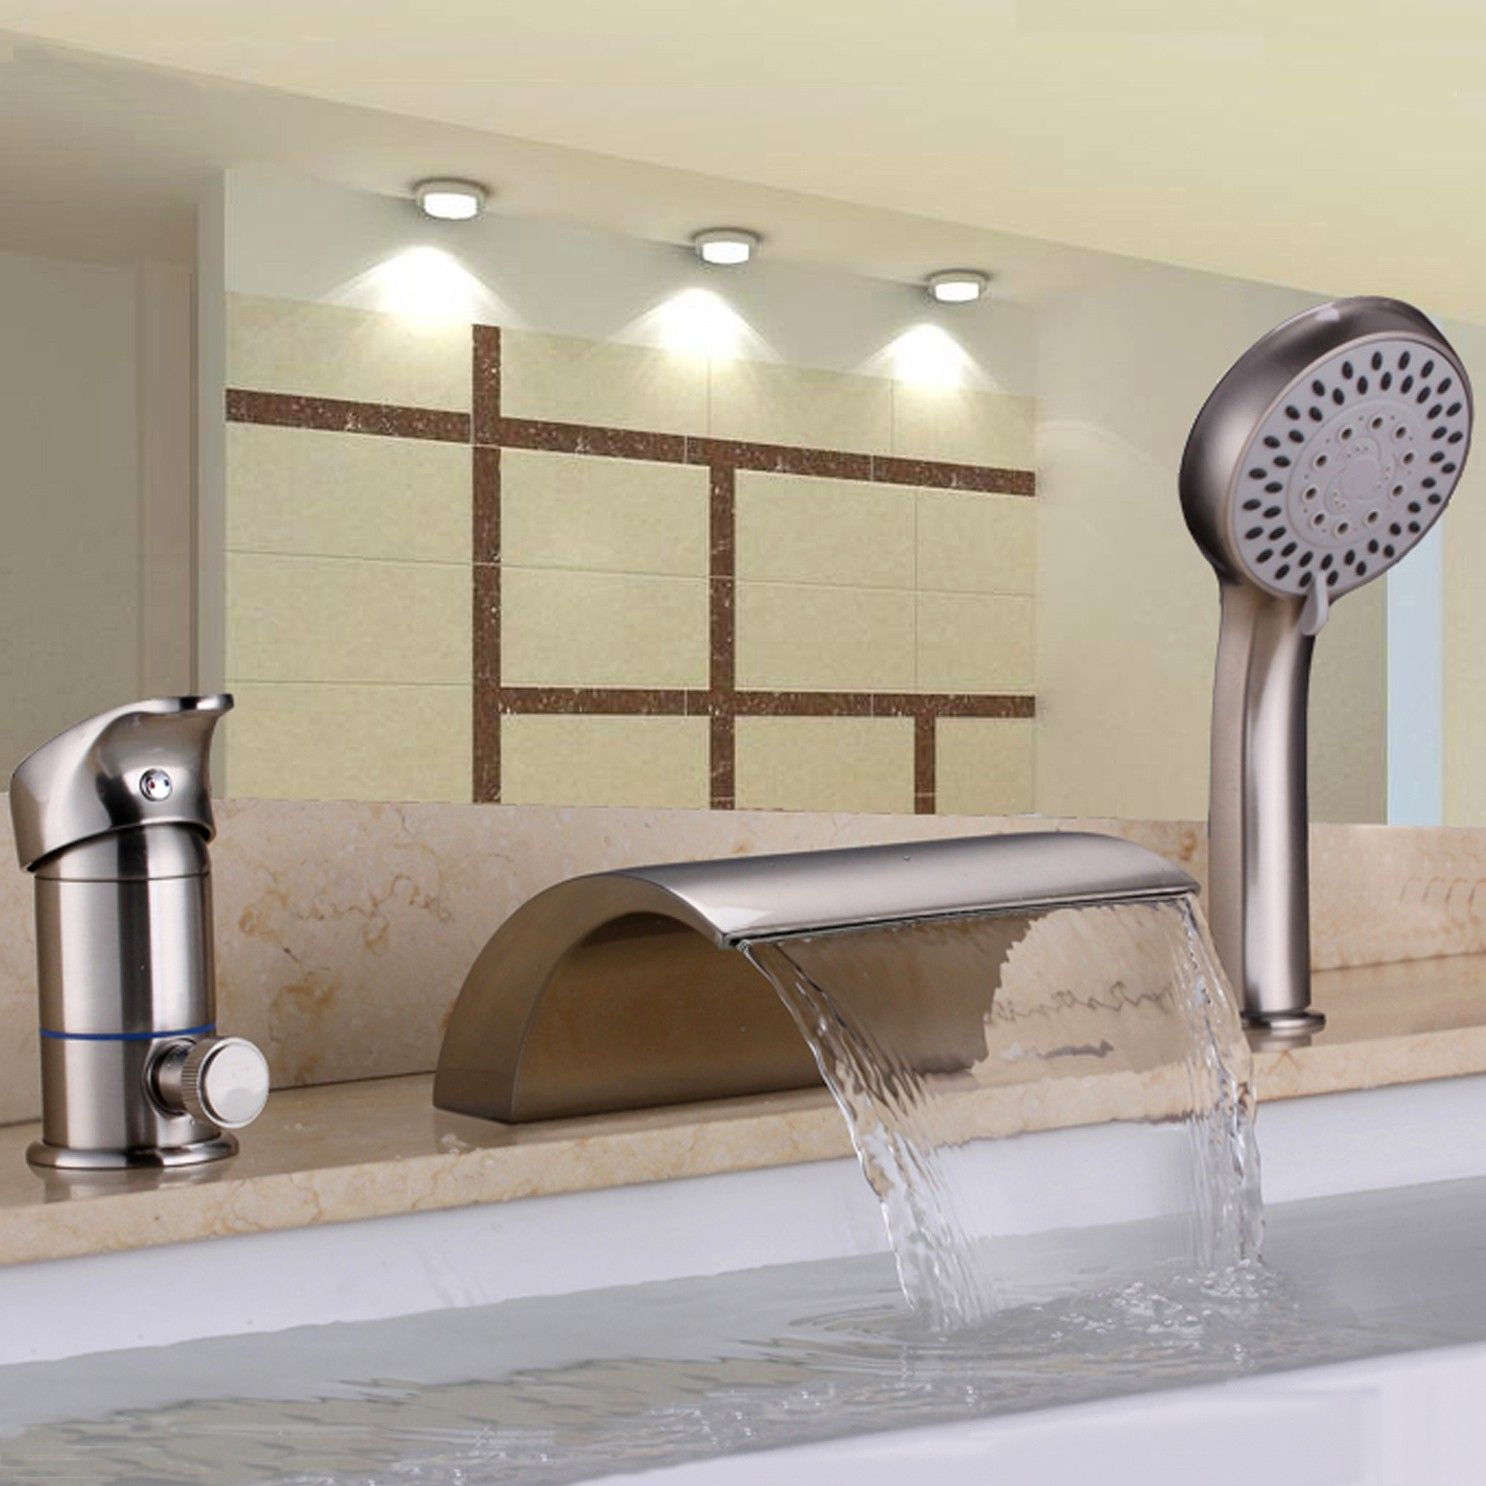 Featuring A Curved Spout To Create Waterfall Showing A Low